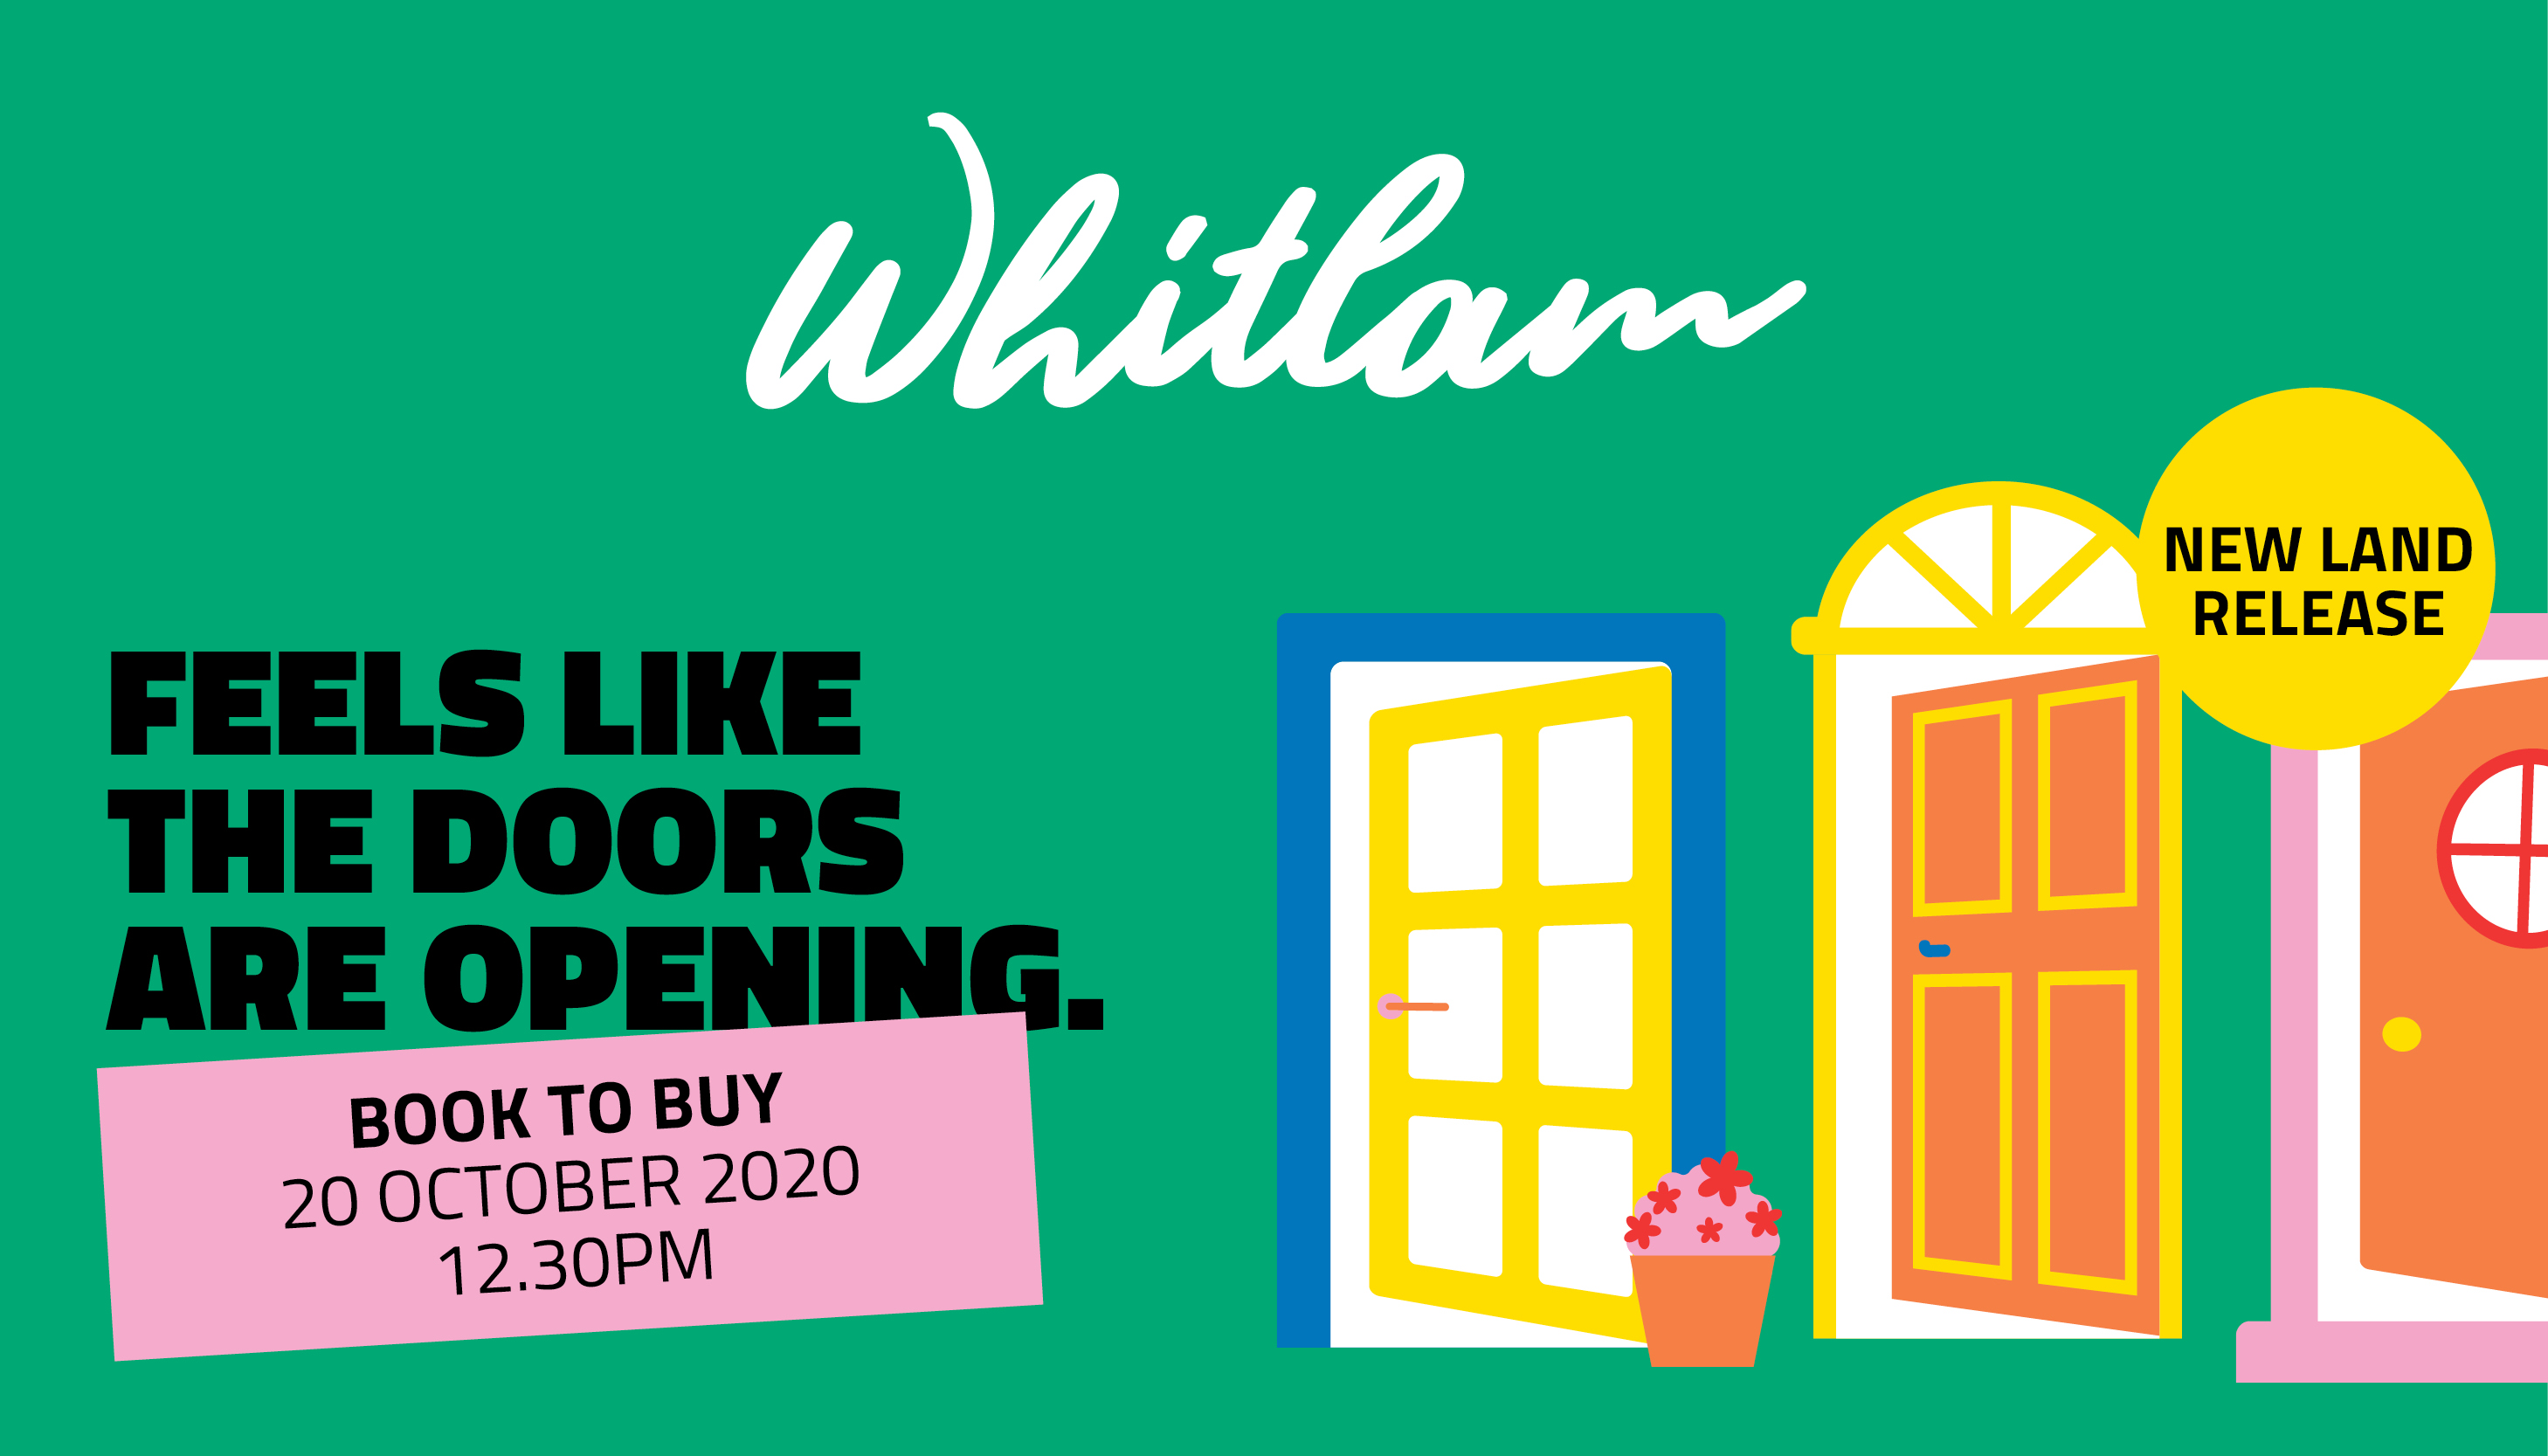 Book to Buy - blocks available in Whitlam